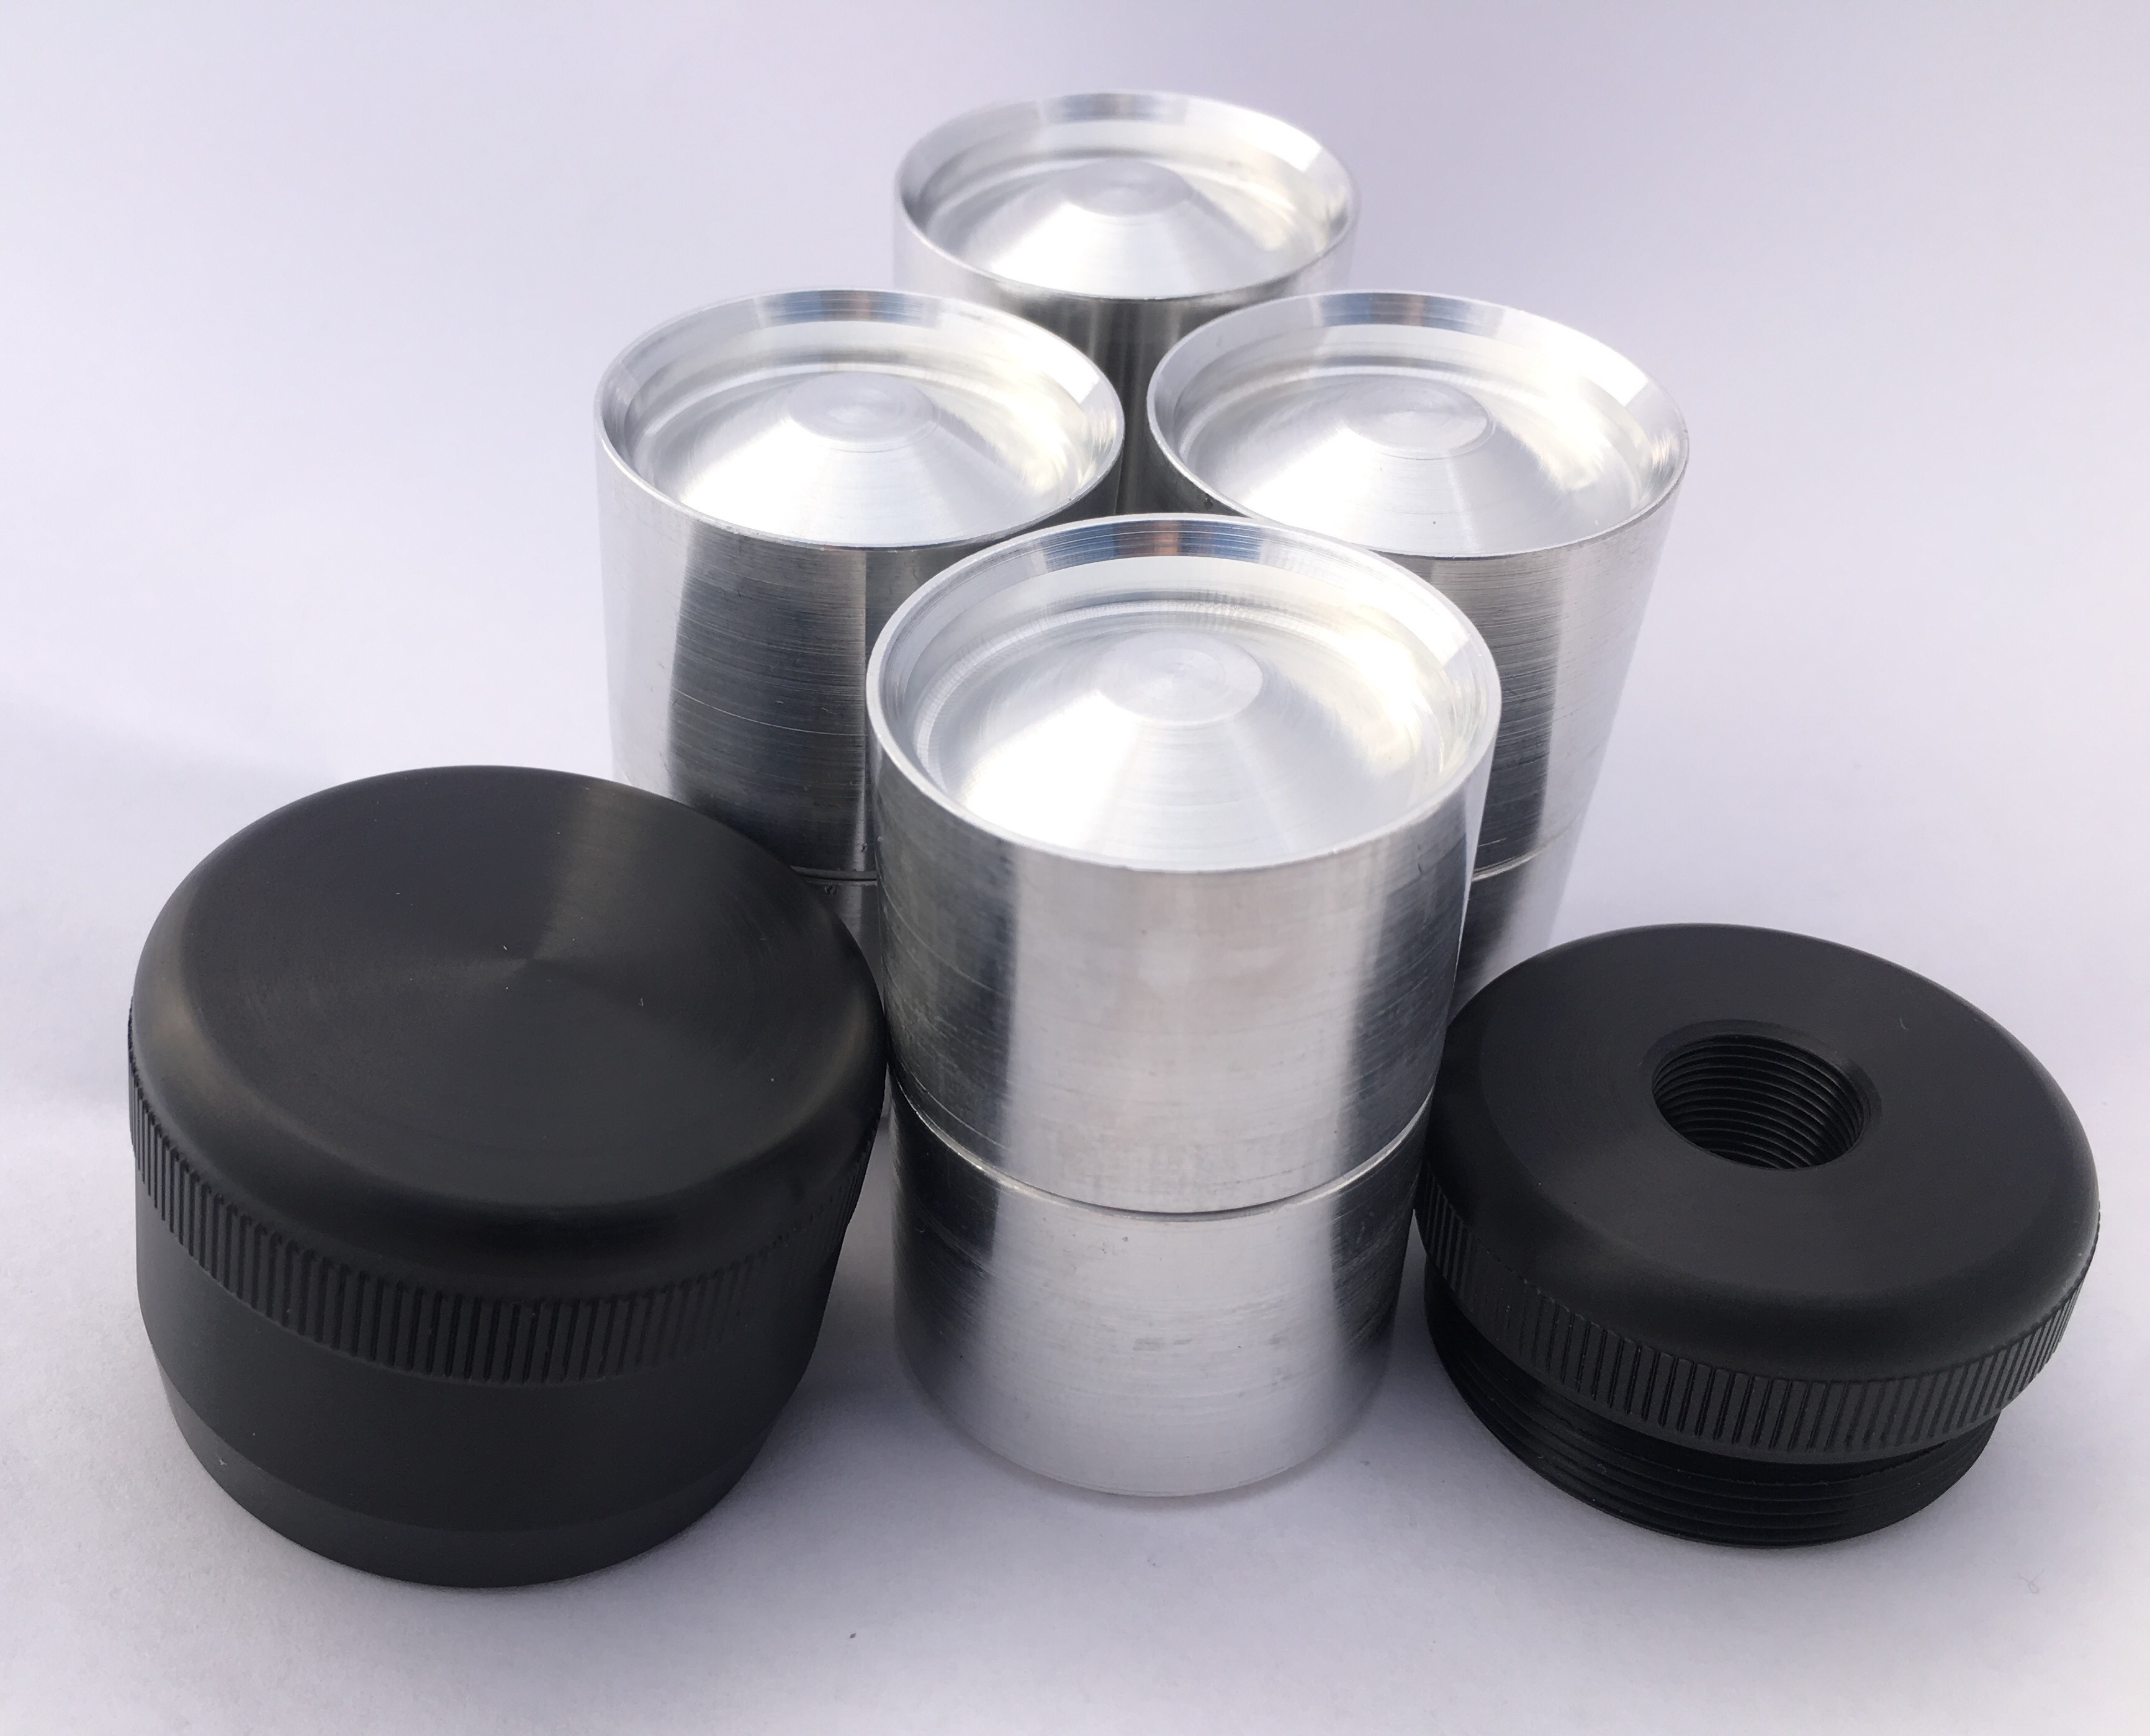 Jmpf Solvent Trap D Cell Maglite Dry Storage Kit Cup